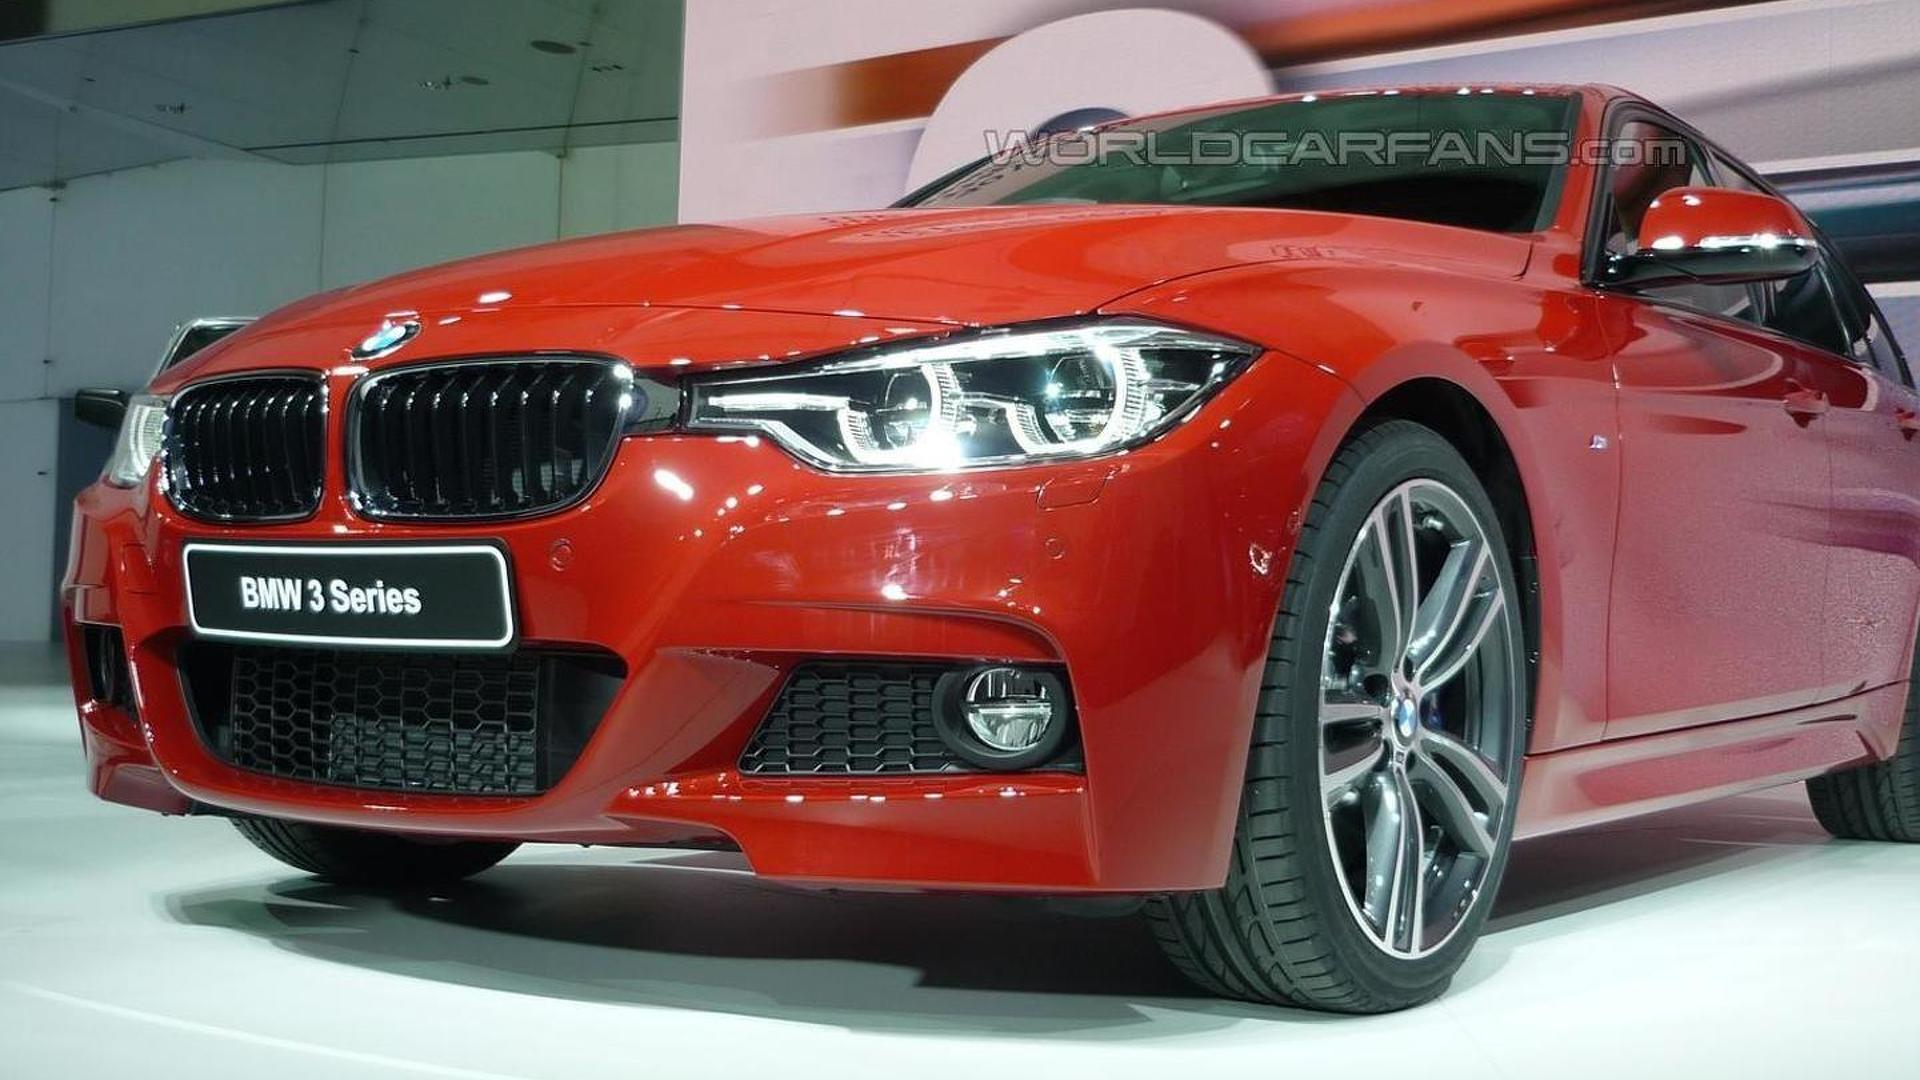 2017 Bmw 3 Series Facelift Goes Official With Three Cylinder Engine And Hybrid Version